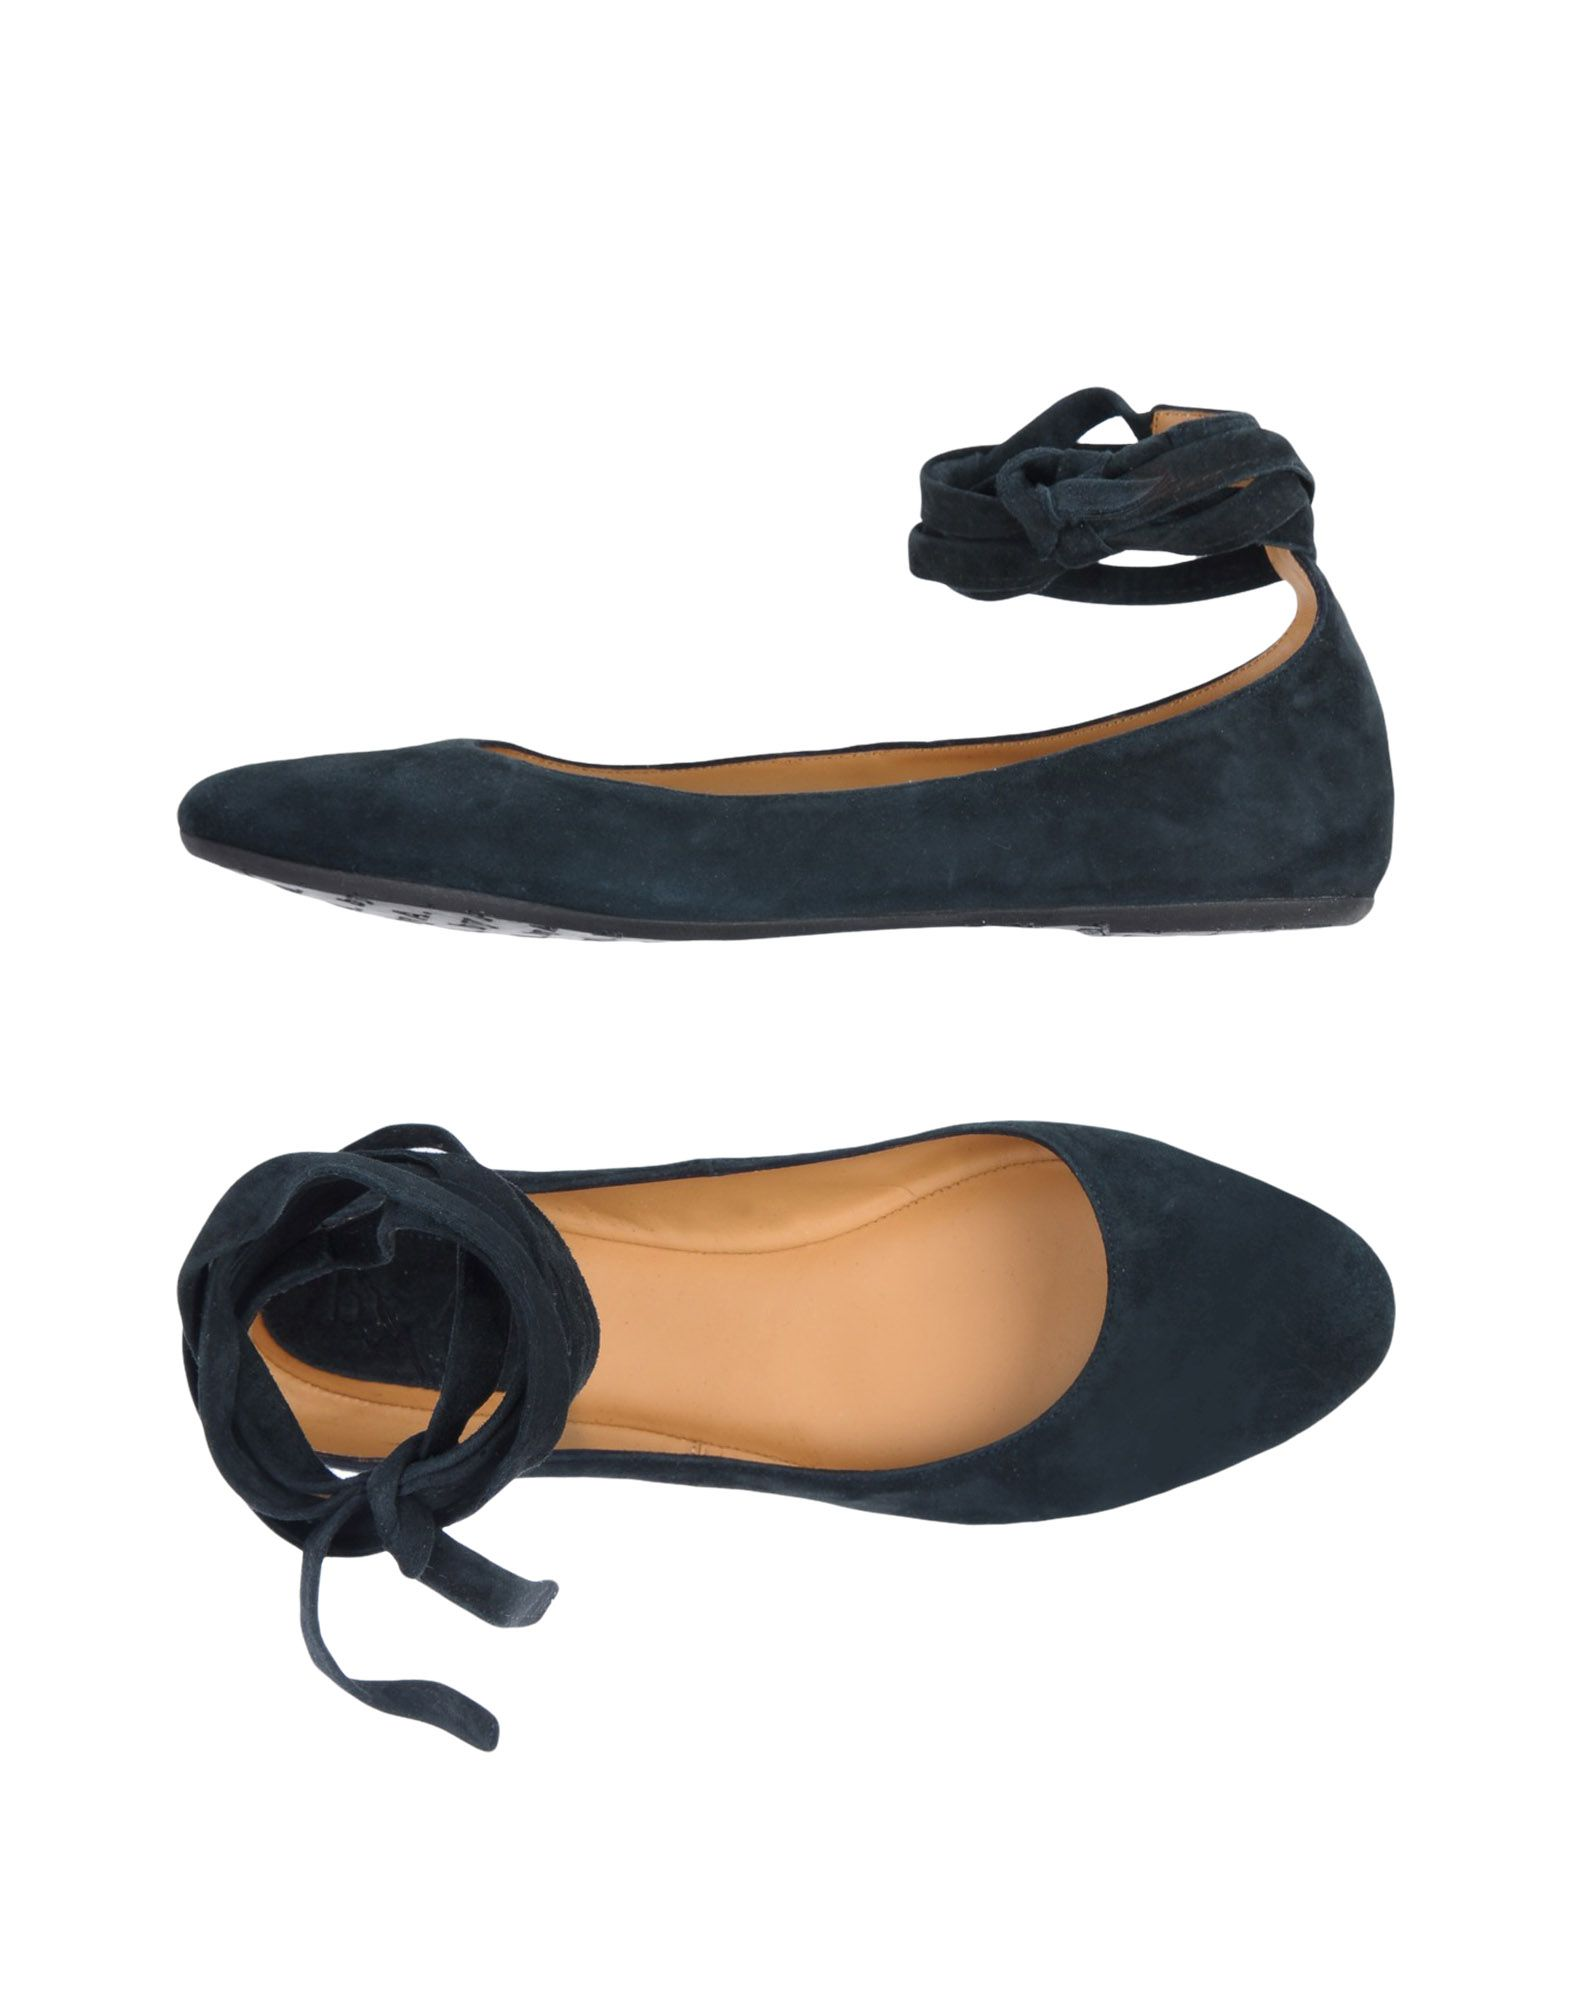 Ballerines By A. Femme - Ballerines By A. sur